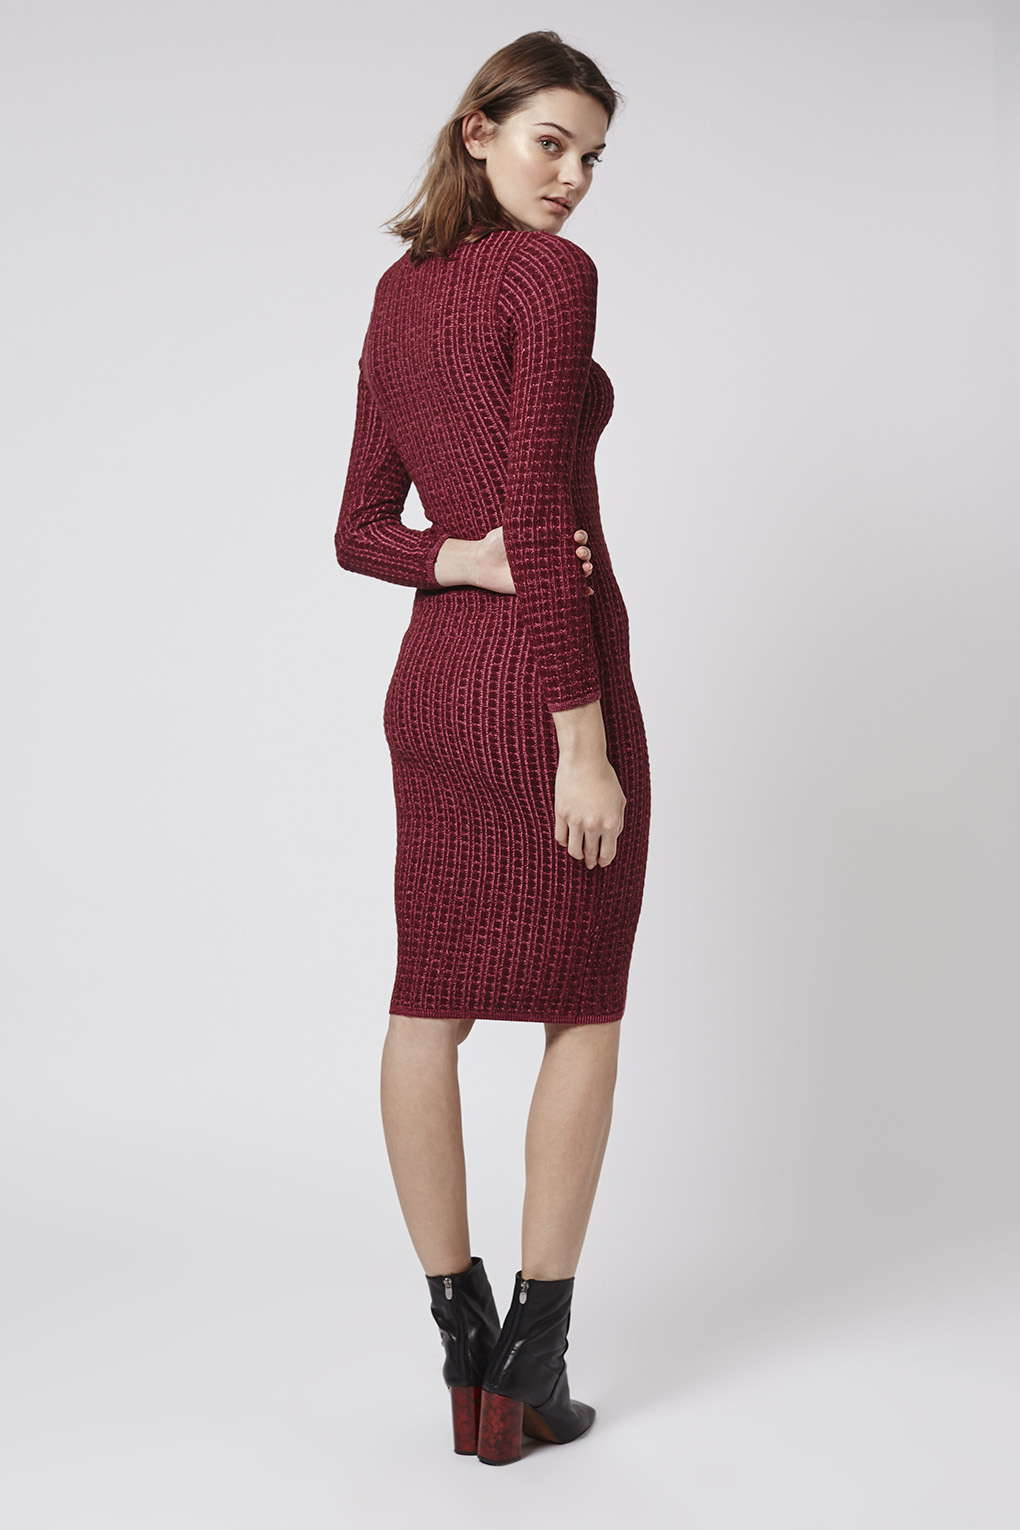 Lyst Topshop Knitted Midi Dress In Red